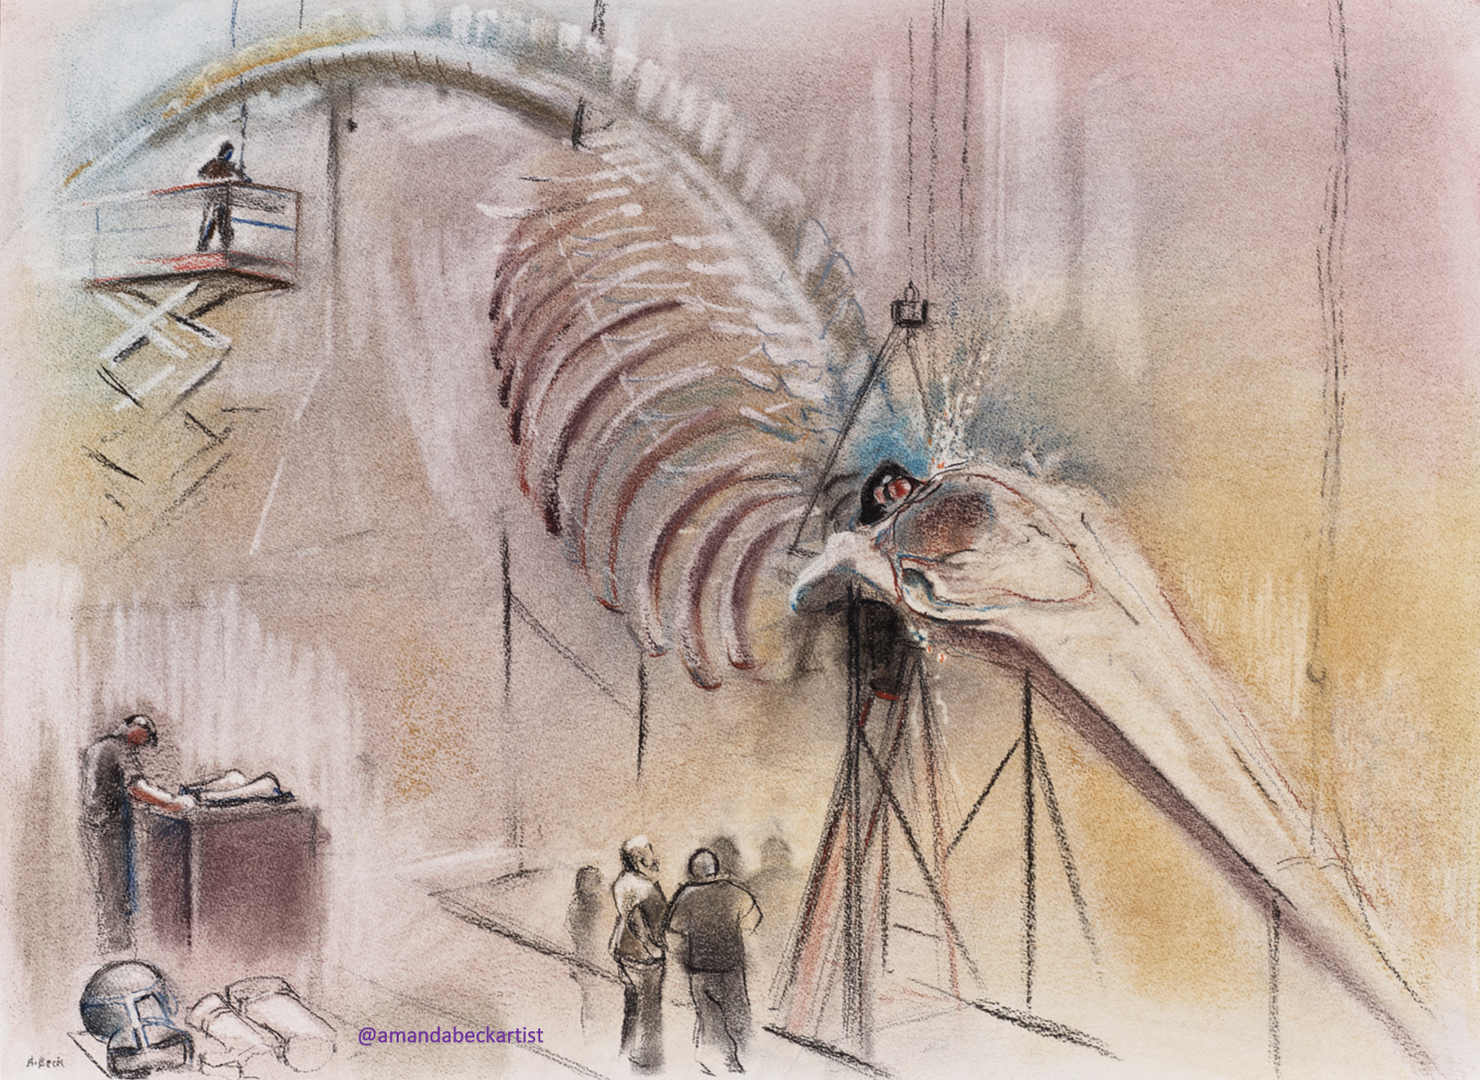 Testing! Hanging the Blue Whale Skeleton